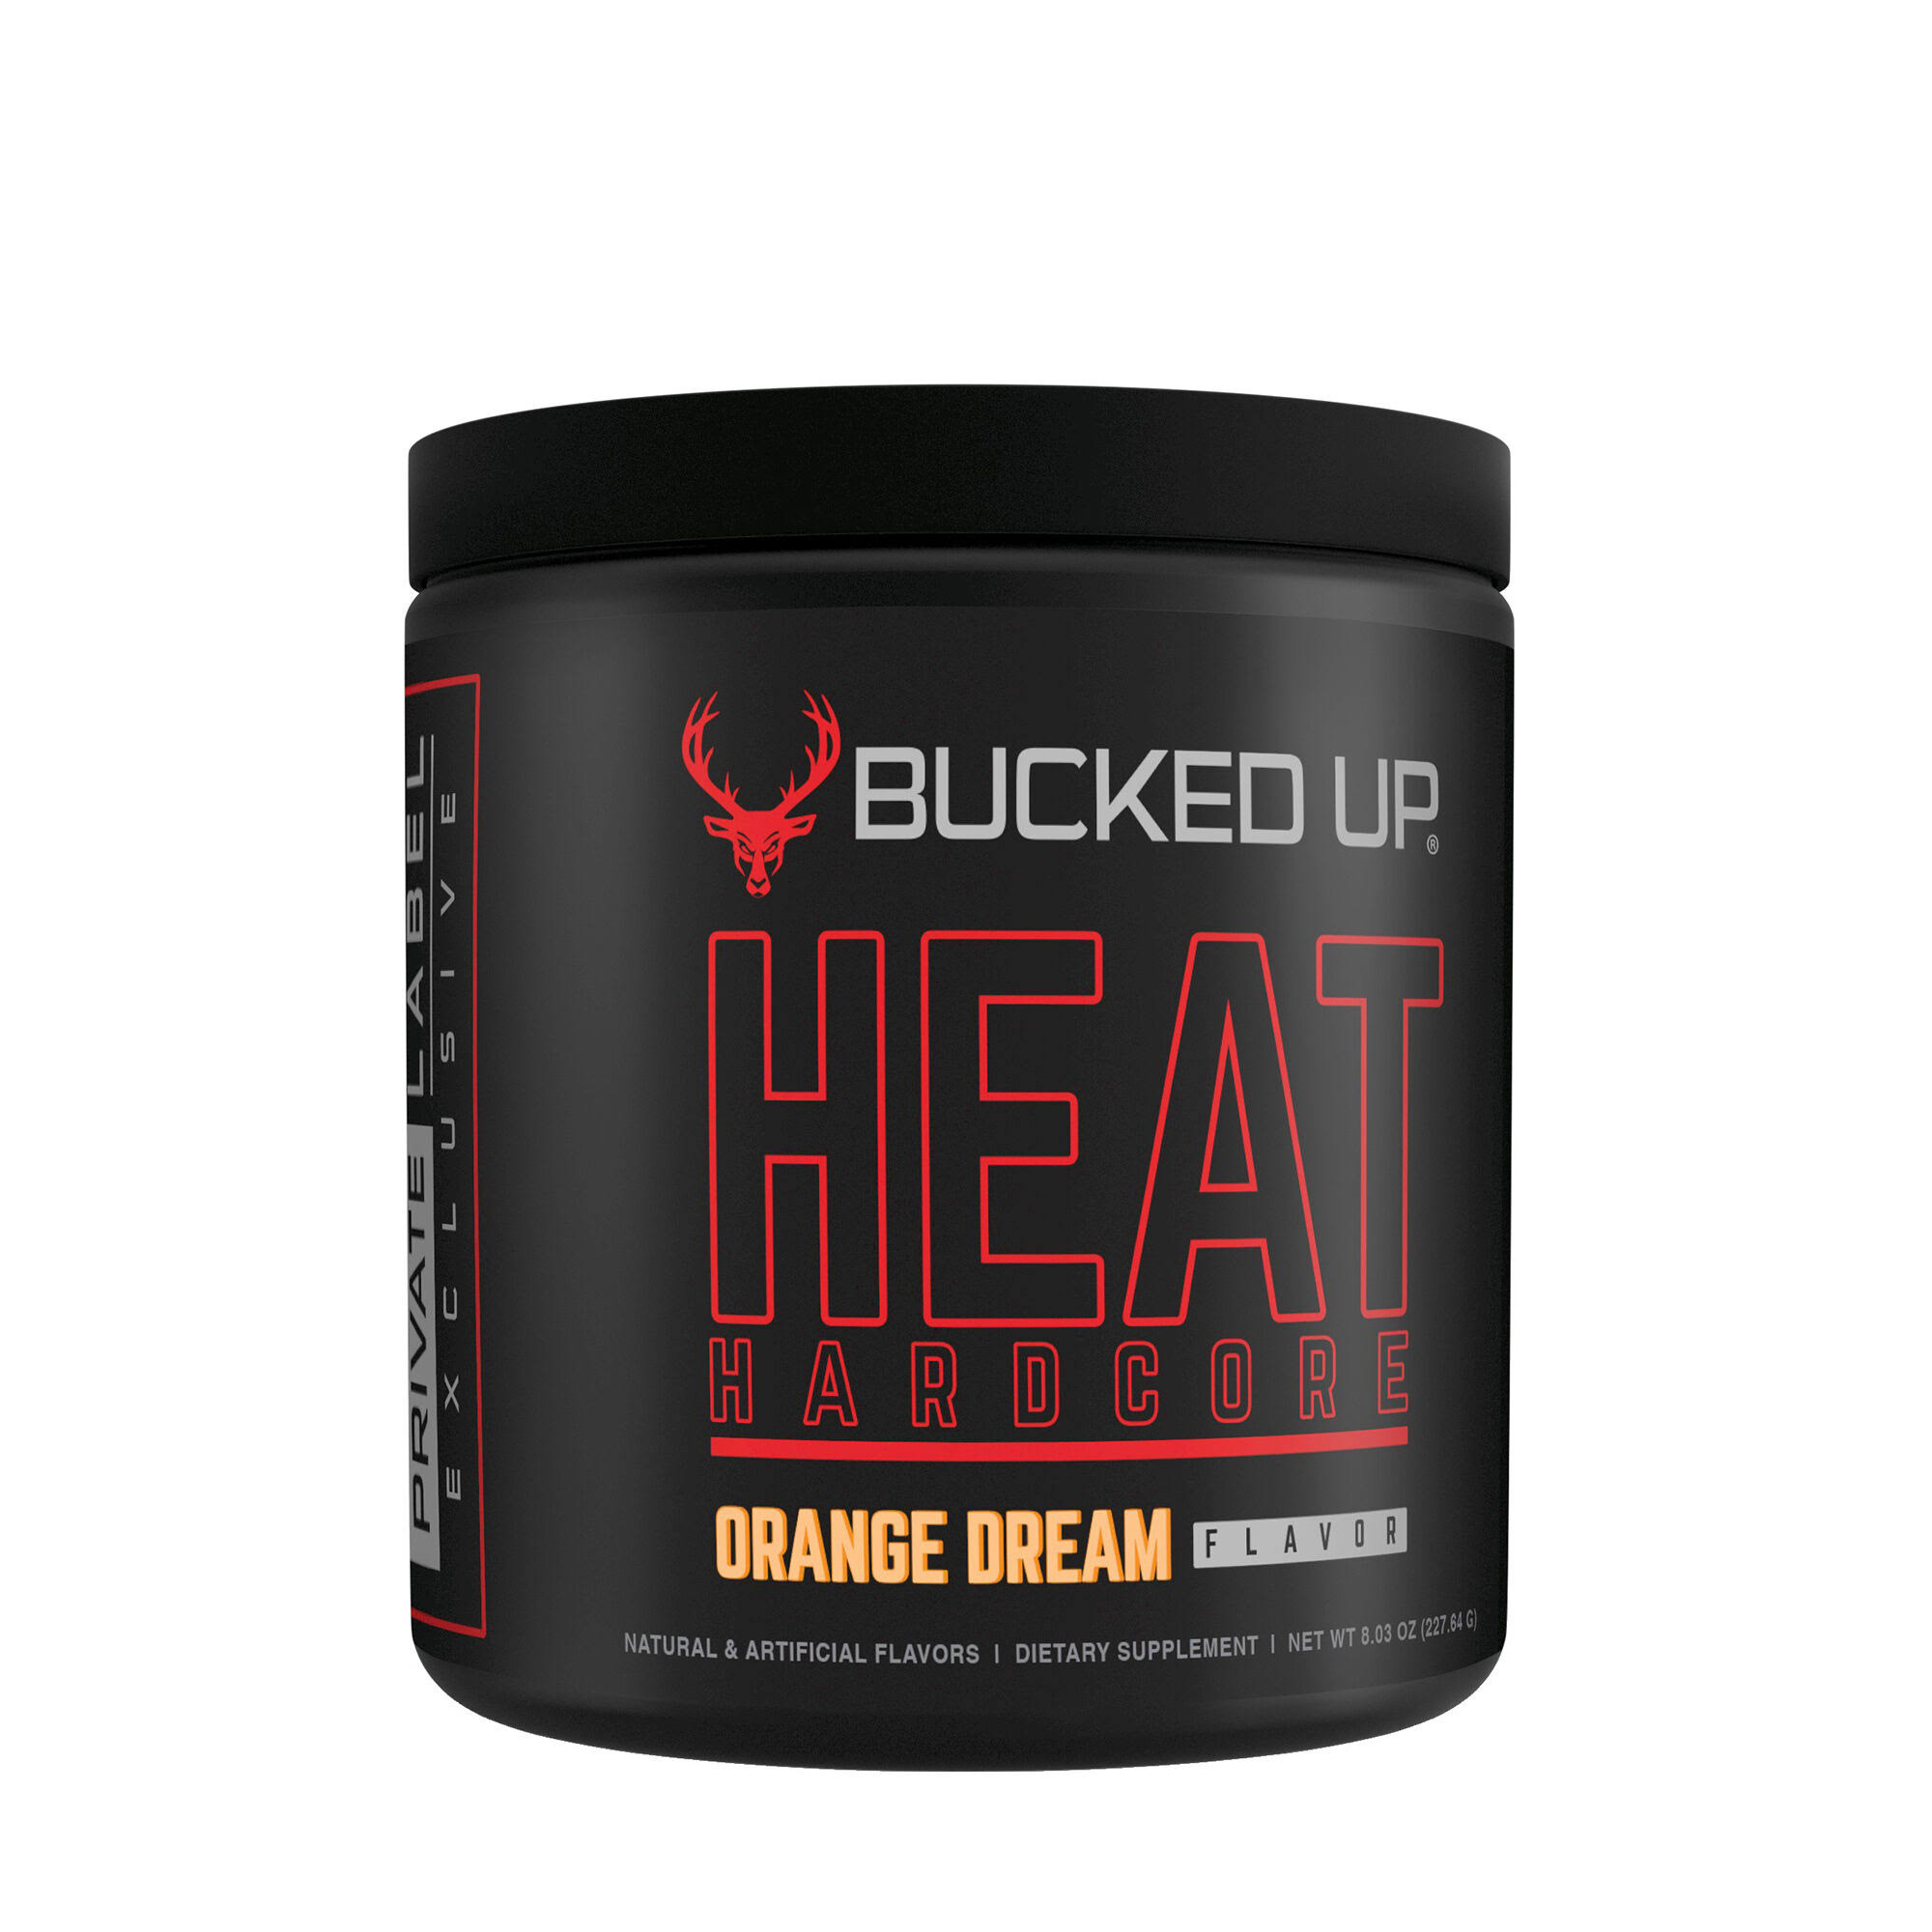 Bucked Up Heat Hardcore - Orange Dream Flavor